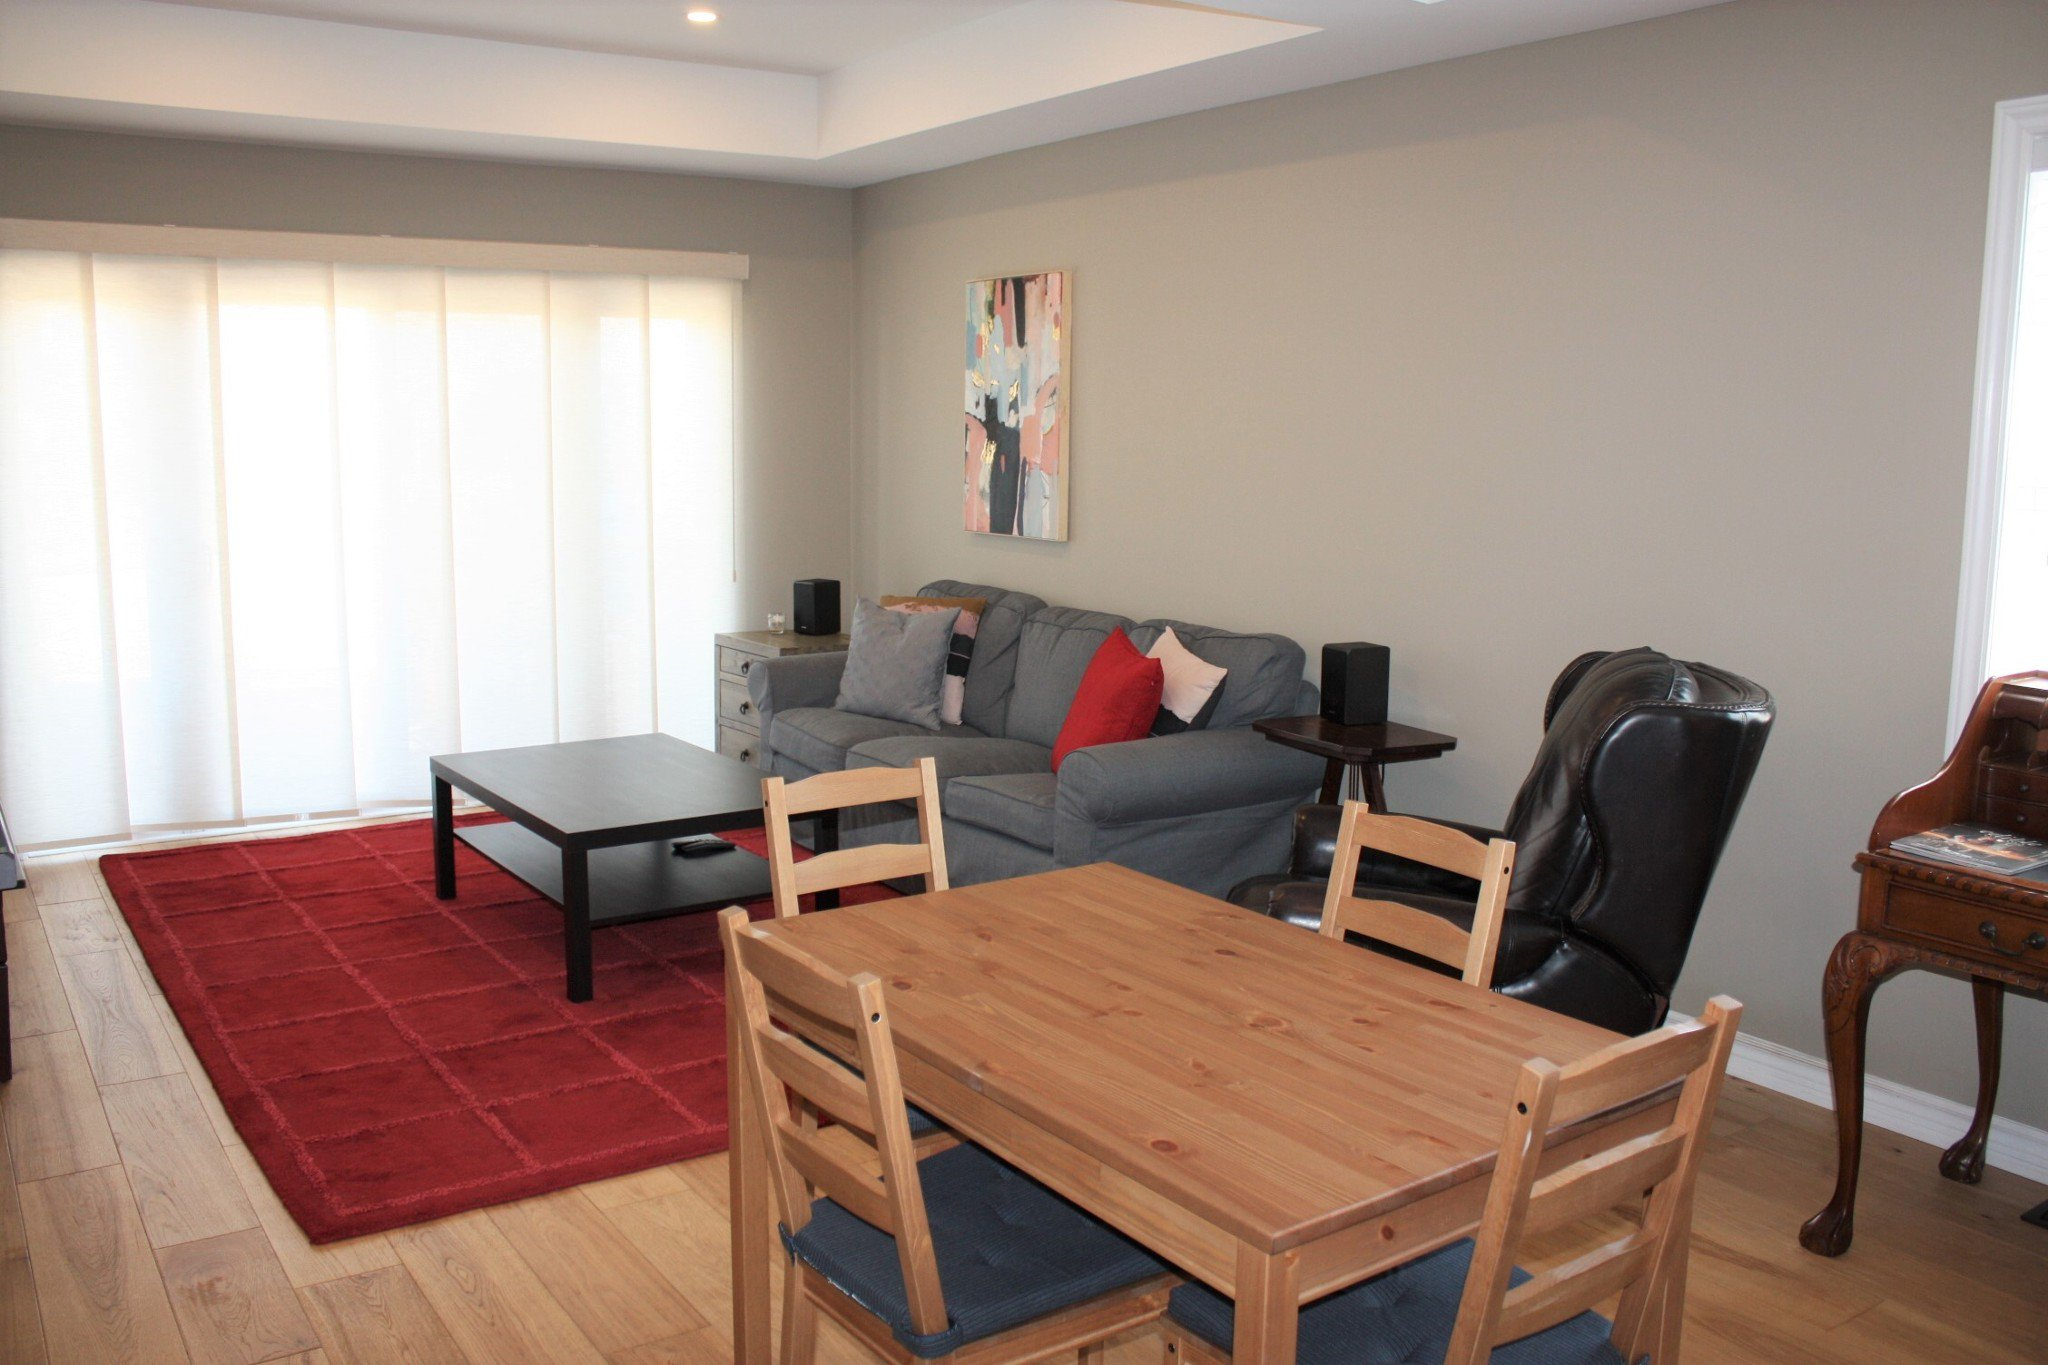 Photo 13: Photos: 706 Ontario Street in Cobourg: Residential Attached for sale : MLS®# 254262